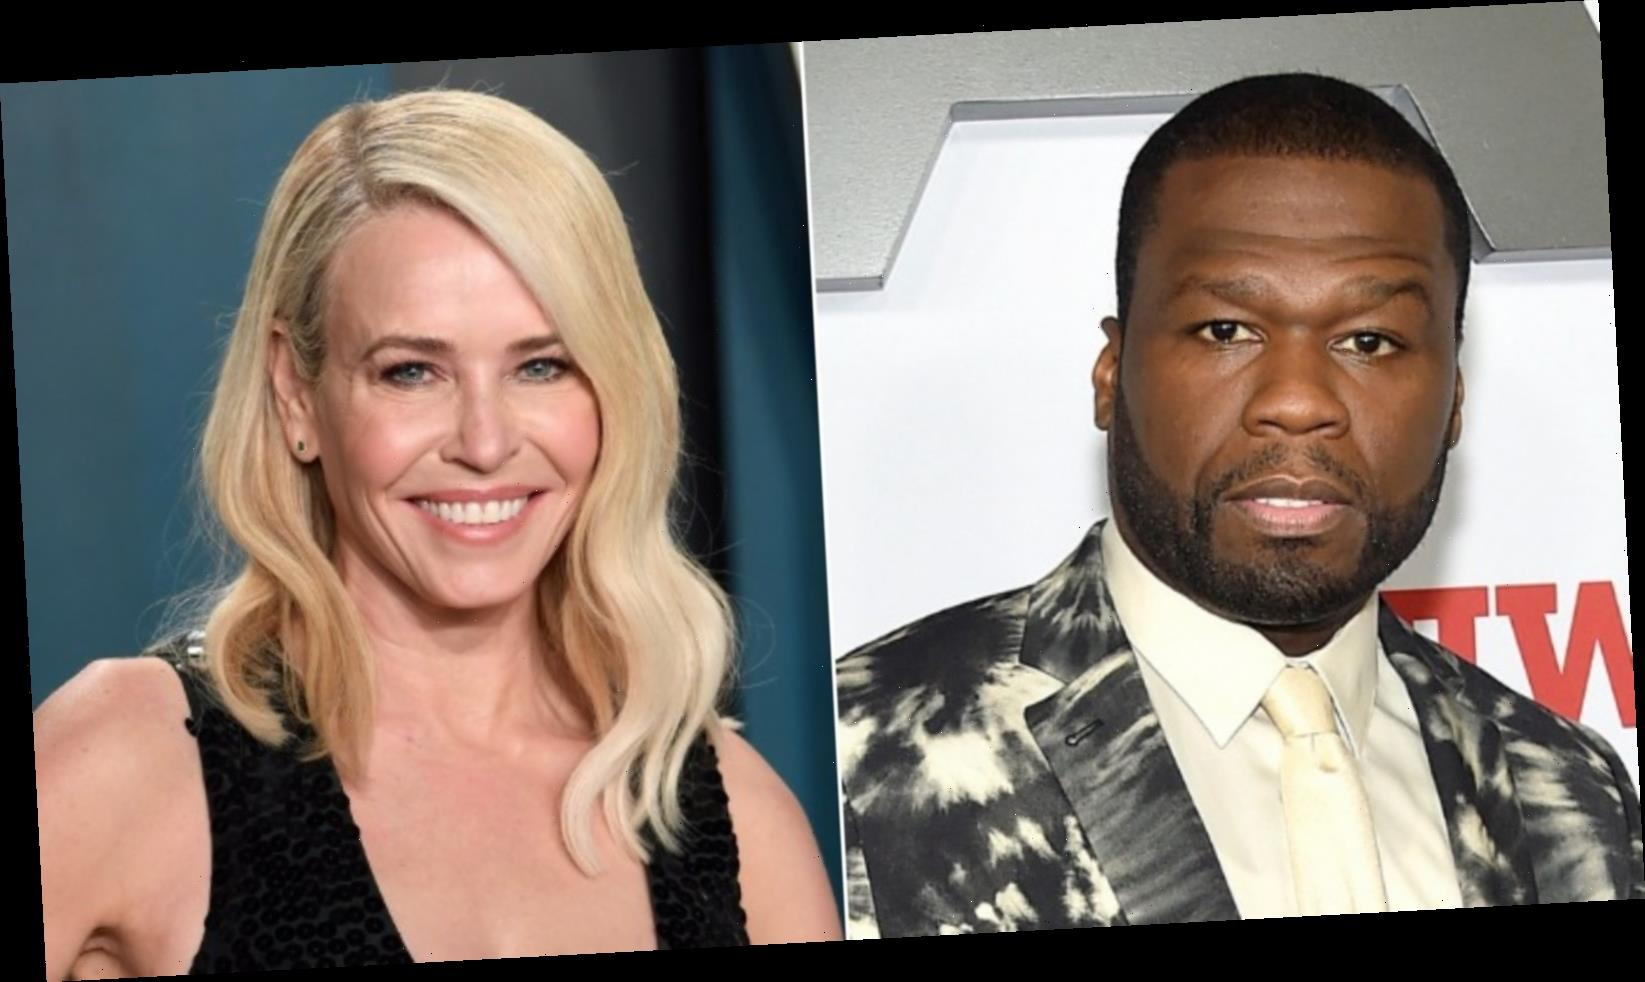 The real reason 50 Cent and Chelsea Handler split